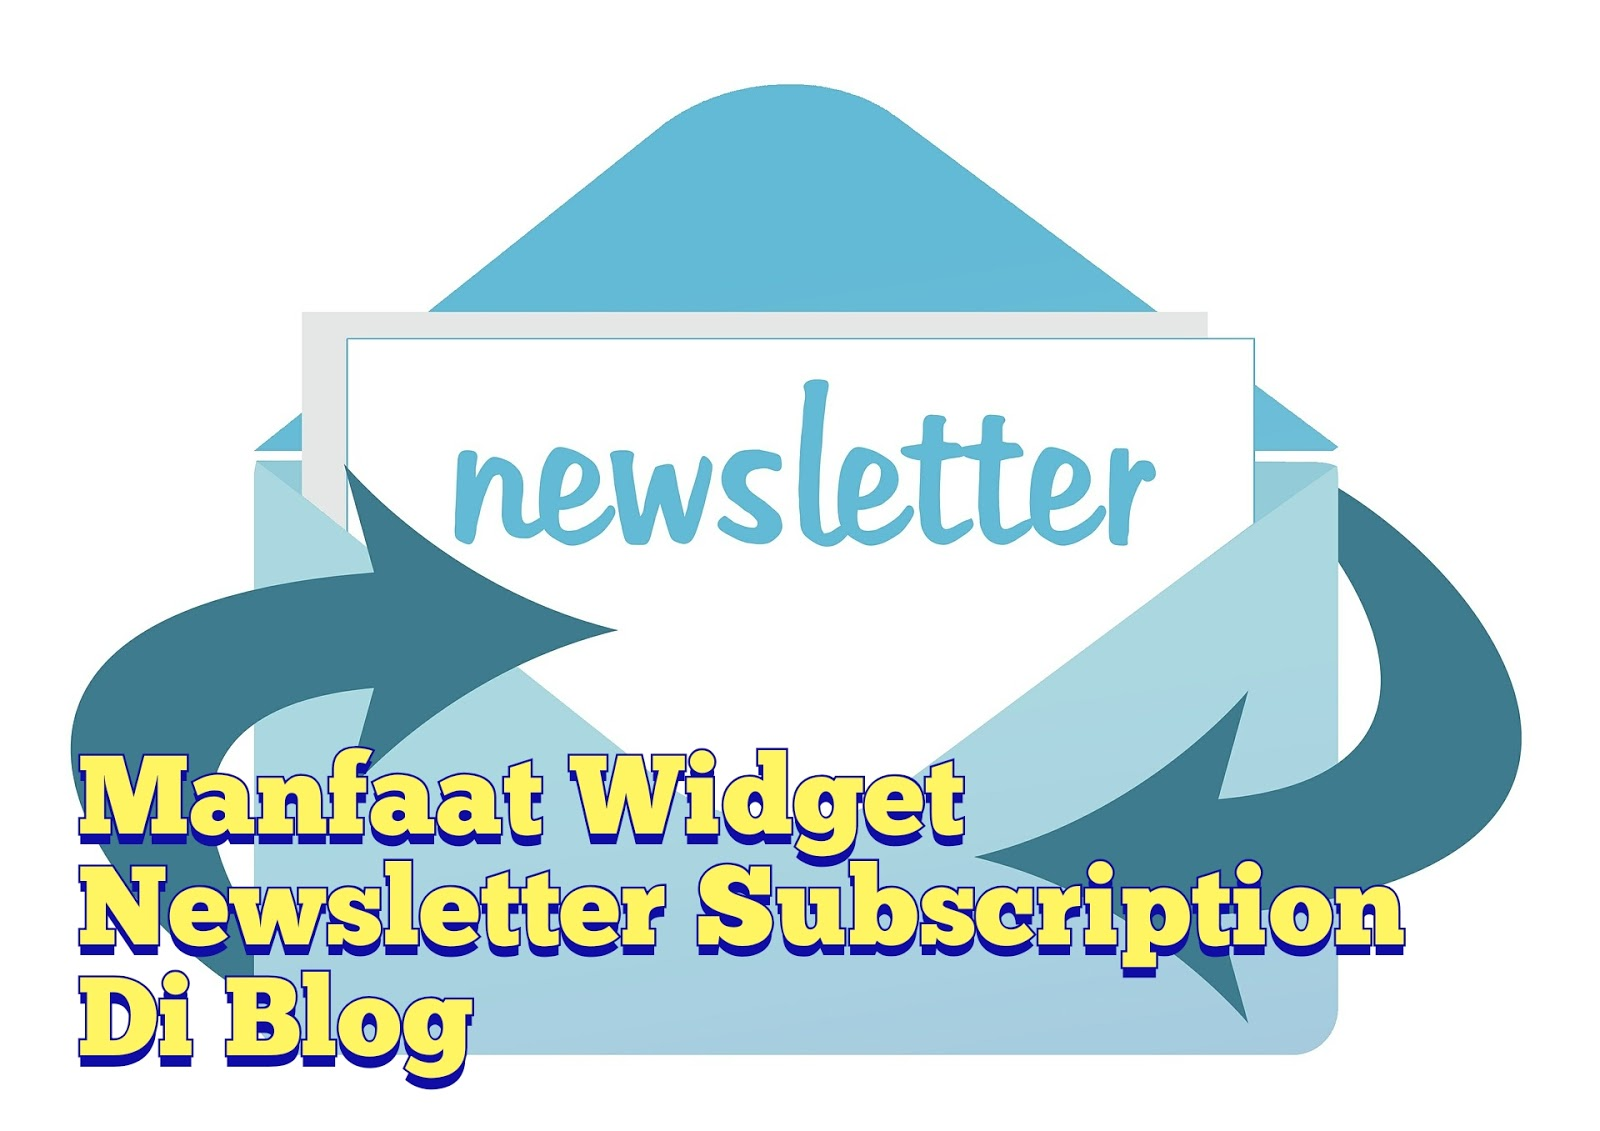 Newsletter Subscription / Follow by Email / Email Subscription